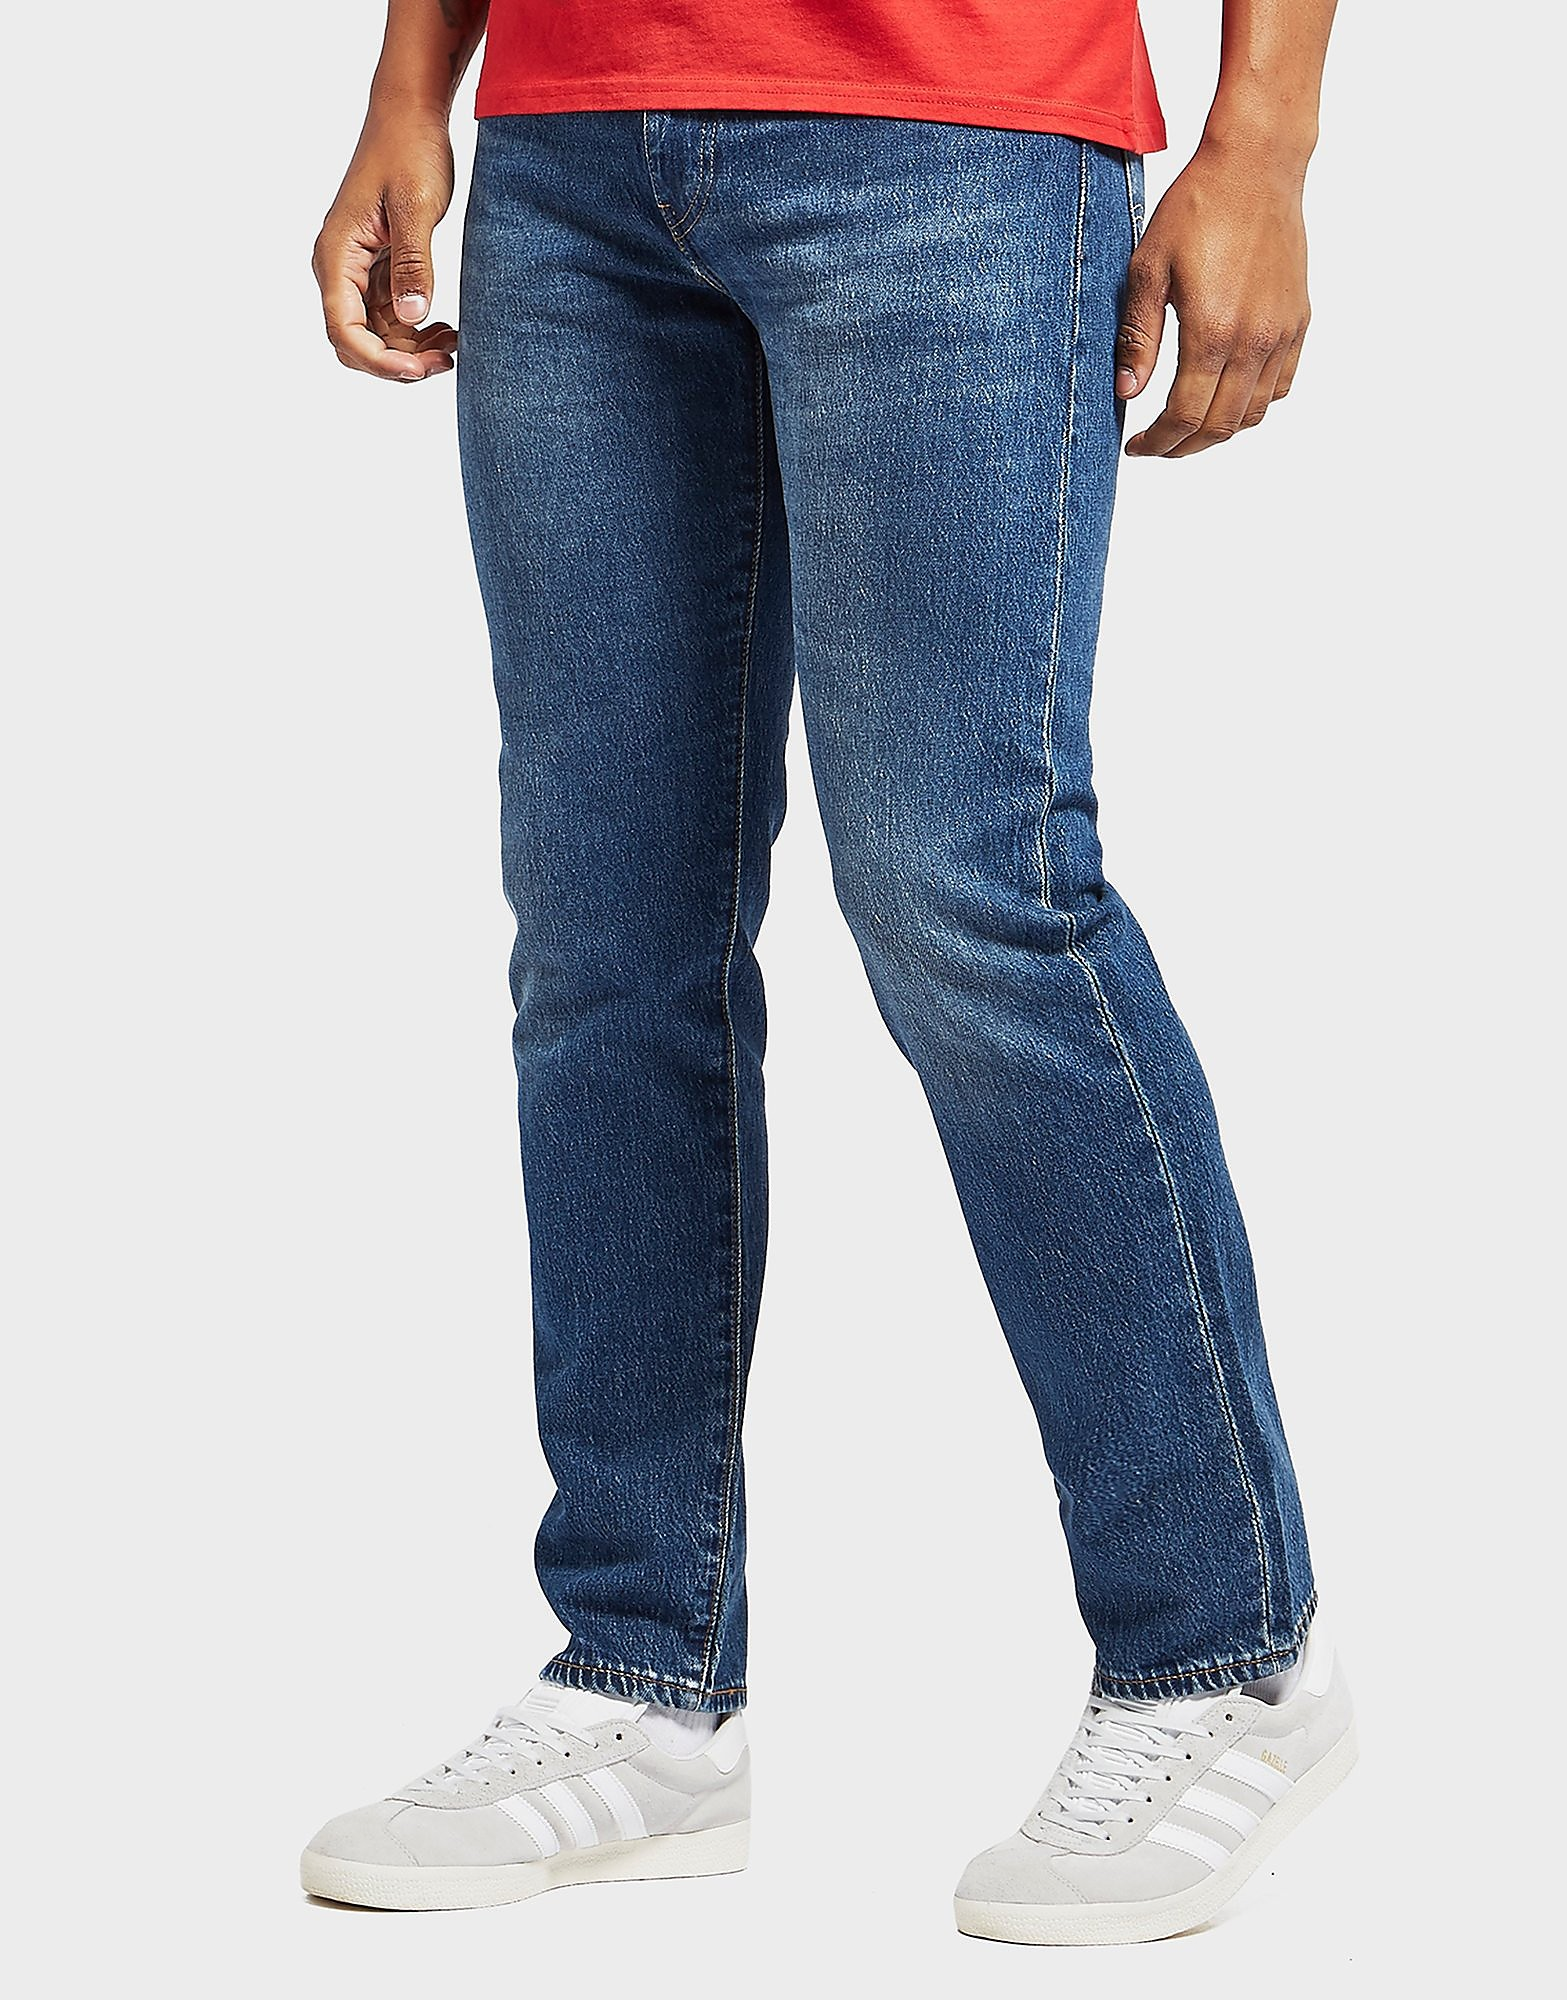 Levis 502 Regular Tapered Jeans